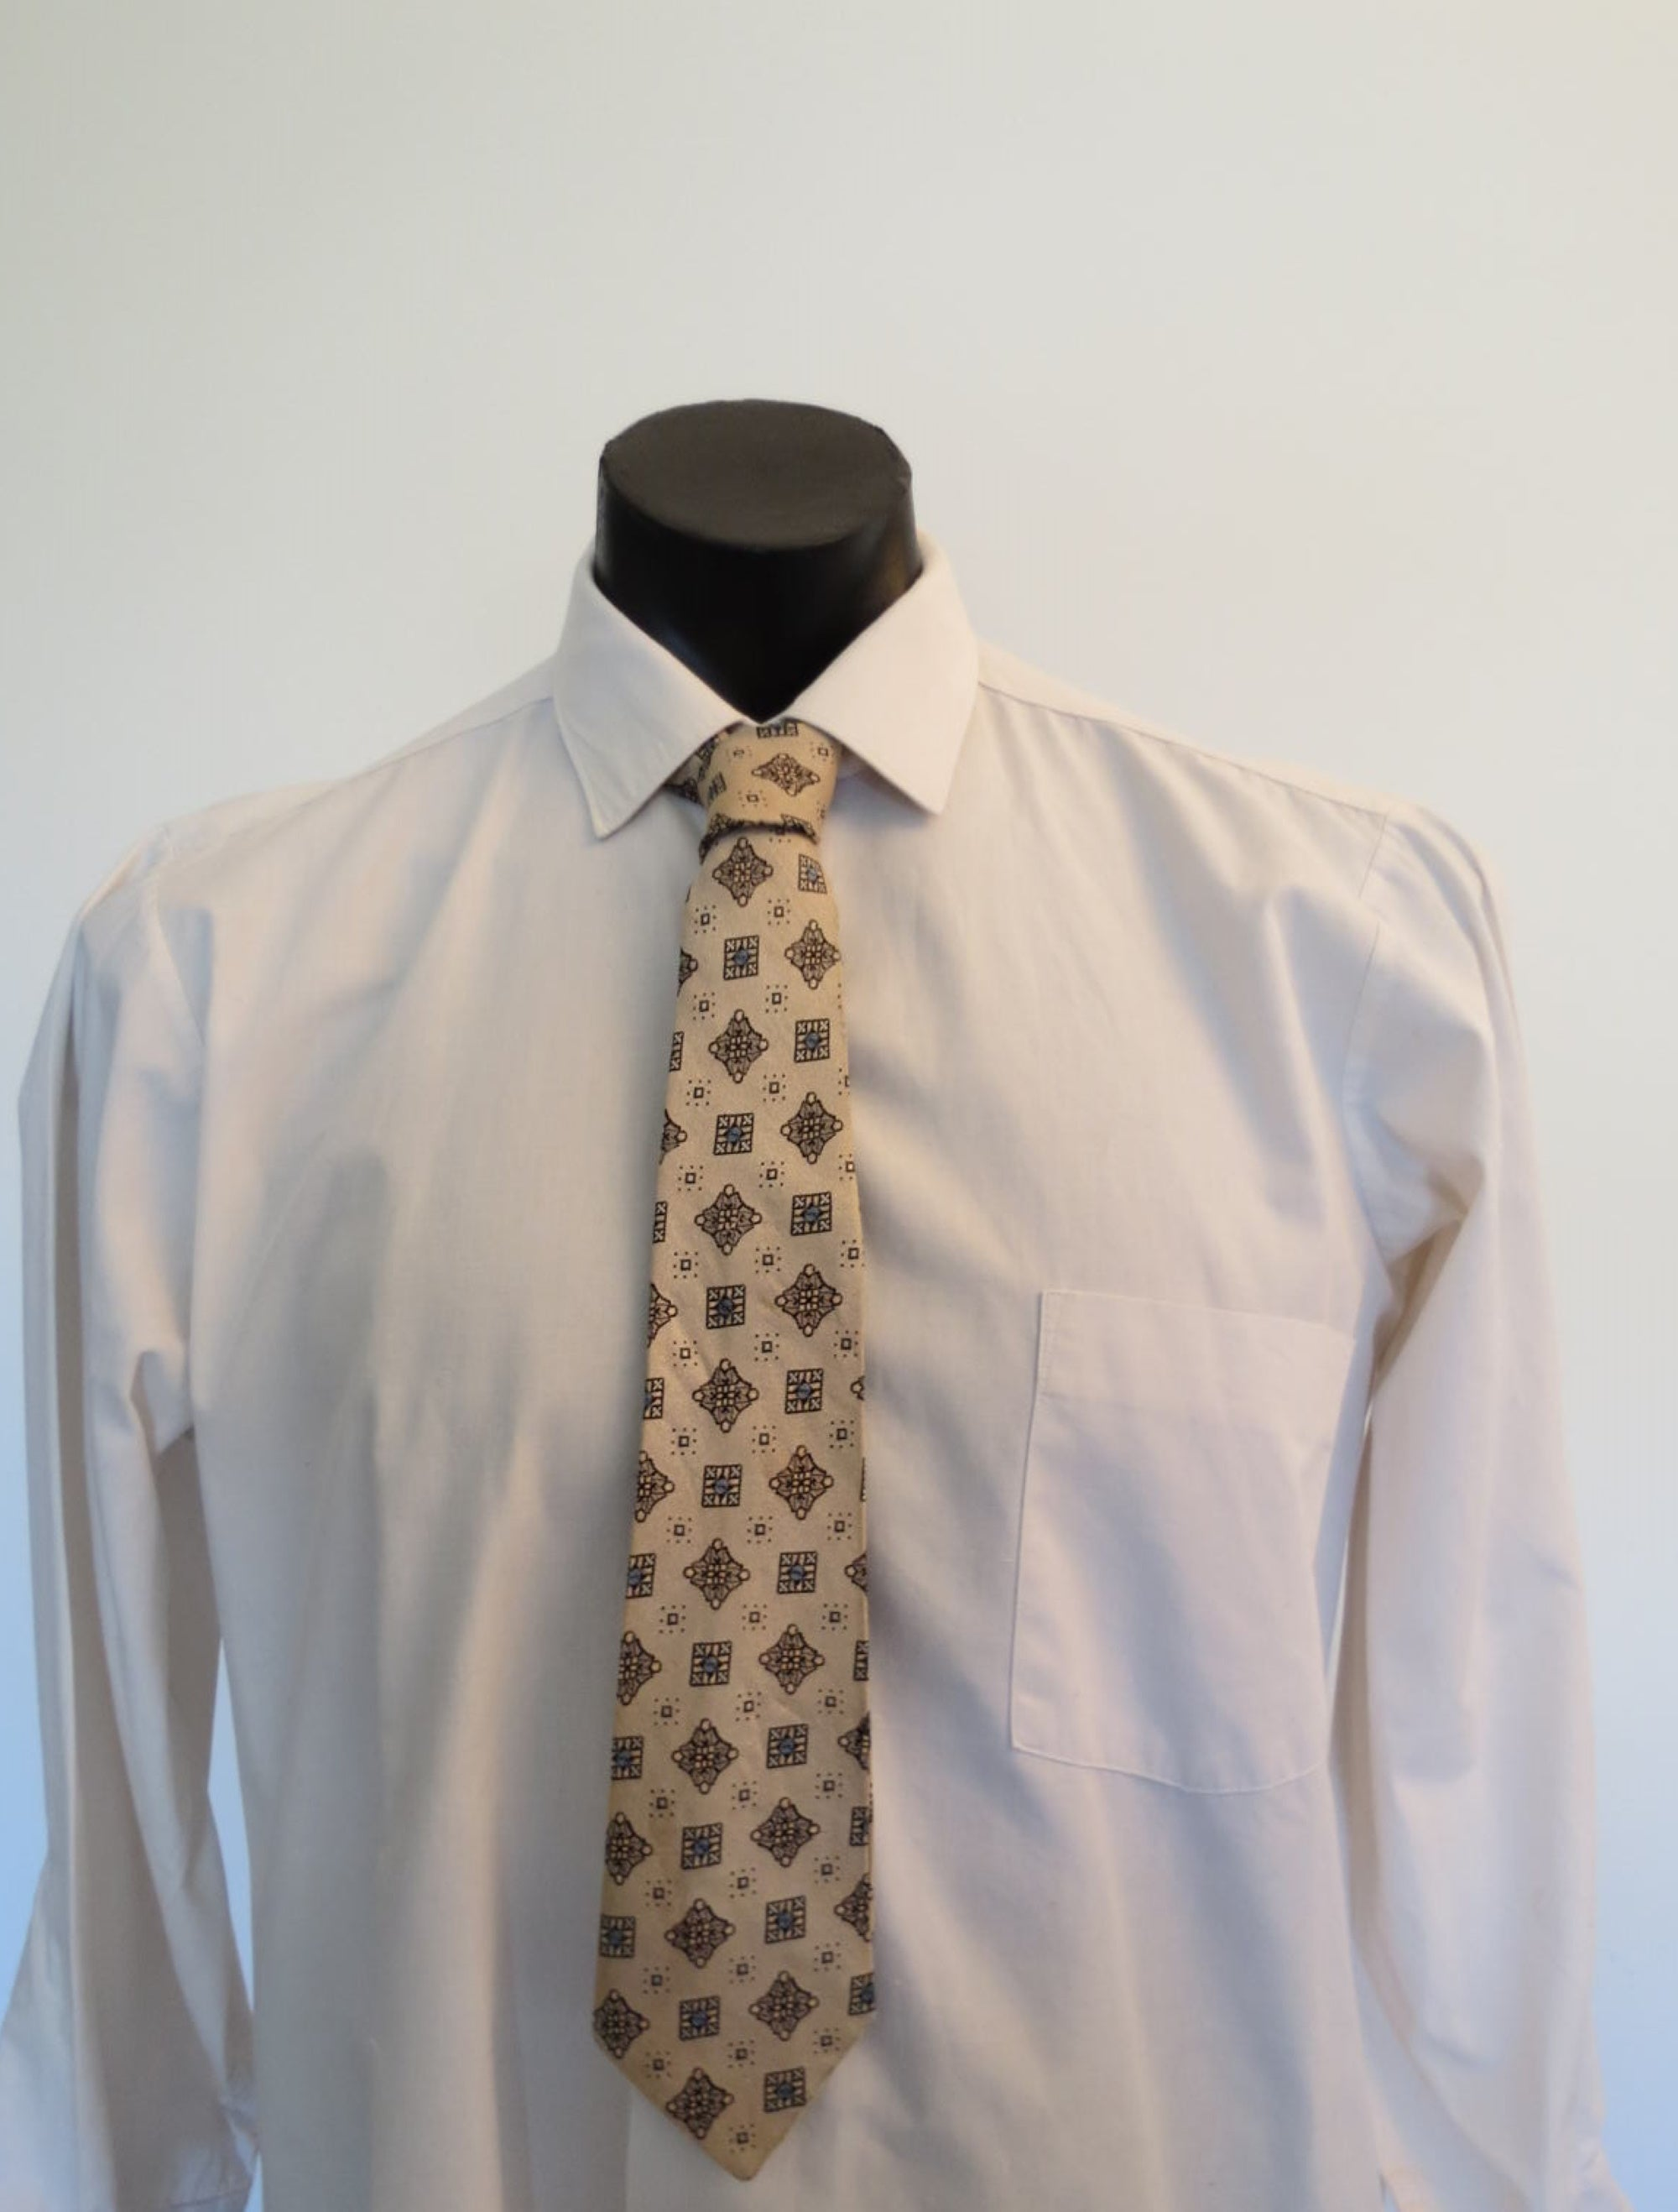 Metallic Beige or Pale Gold Tie with Gold Lozenges, a Fortescue Cravat - 1950s